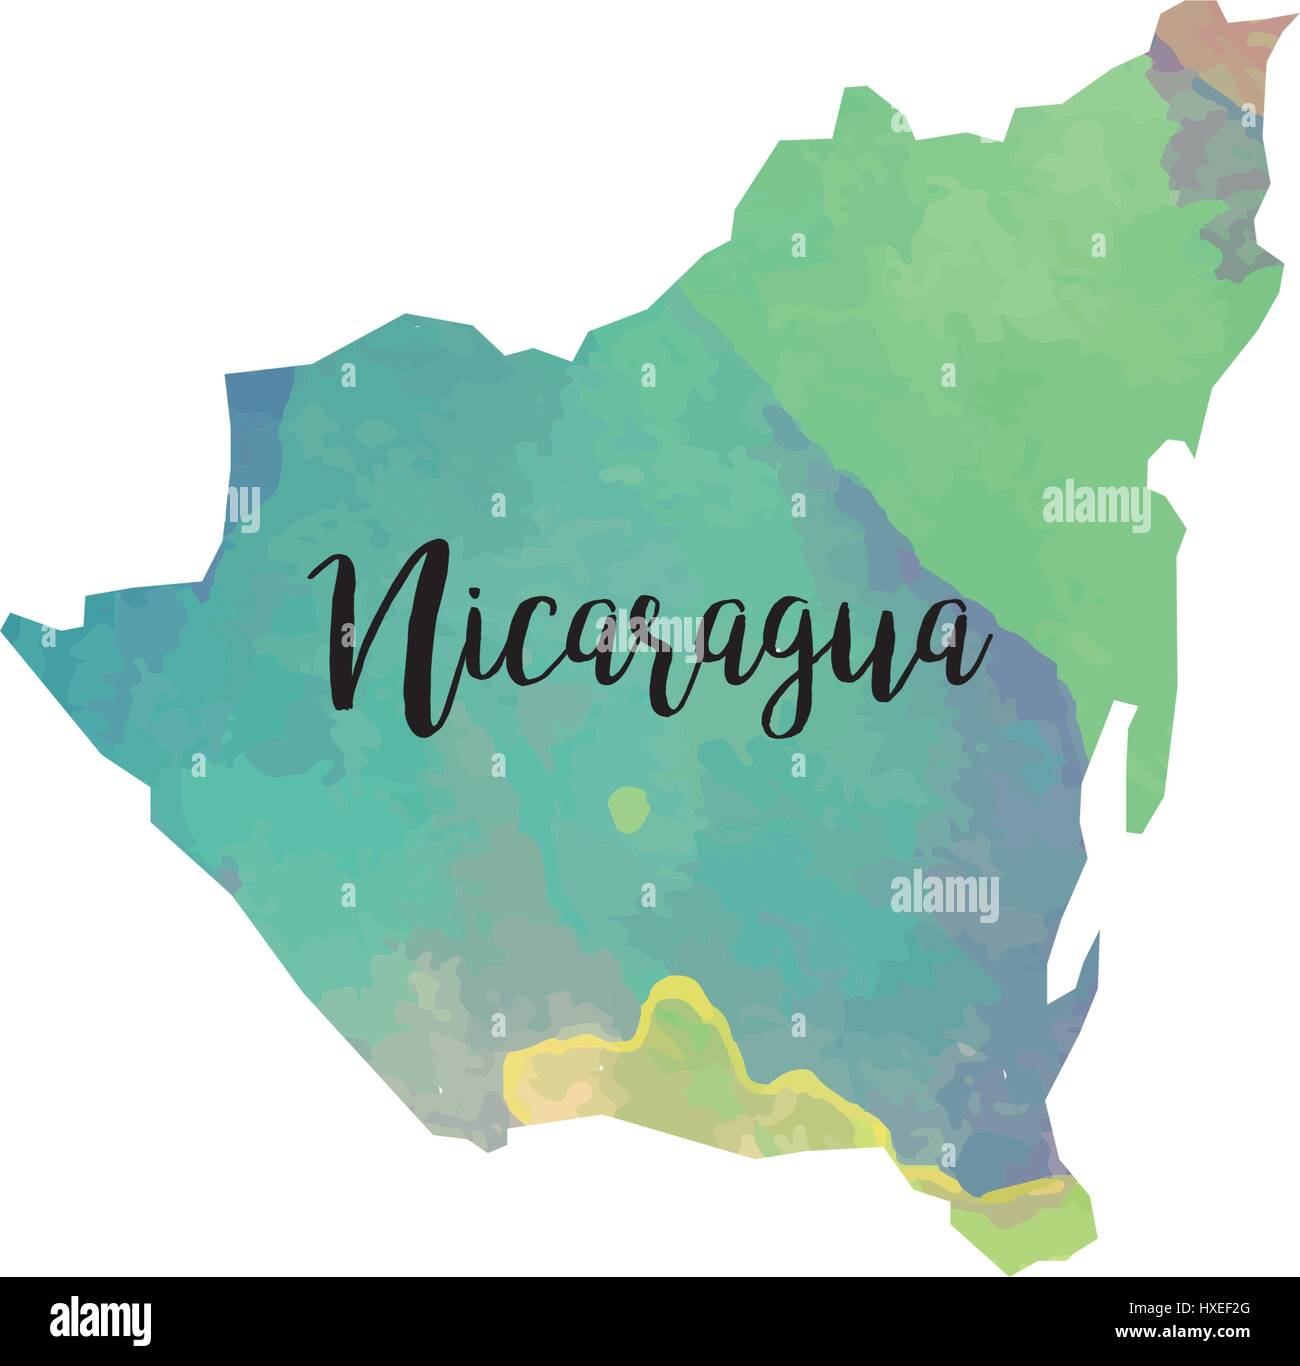 Abstract Nicaragua Map Stock Vector Art Illustration Vector - Where is nicaragua on the world map